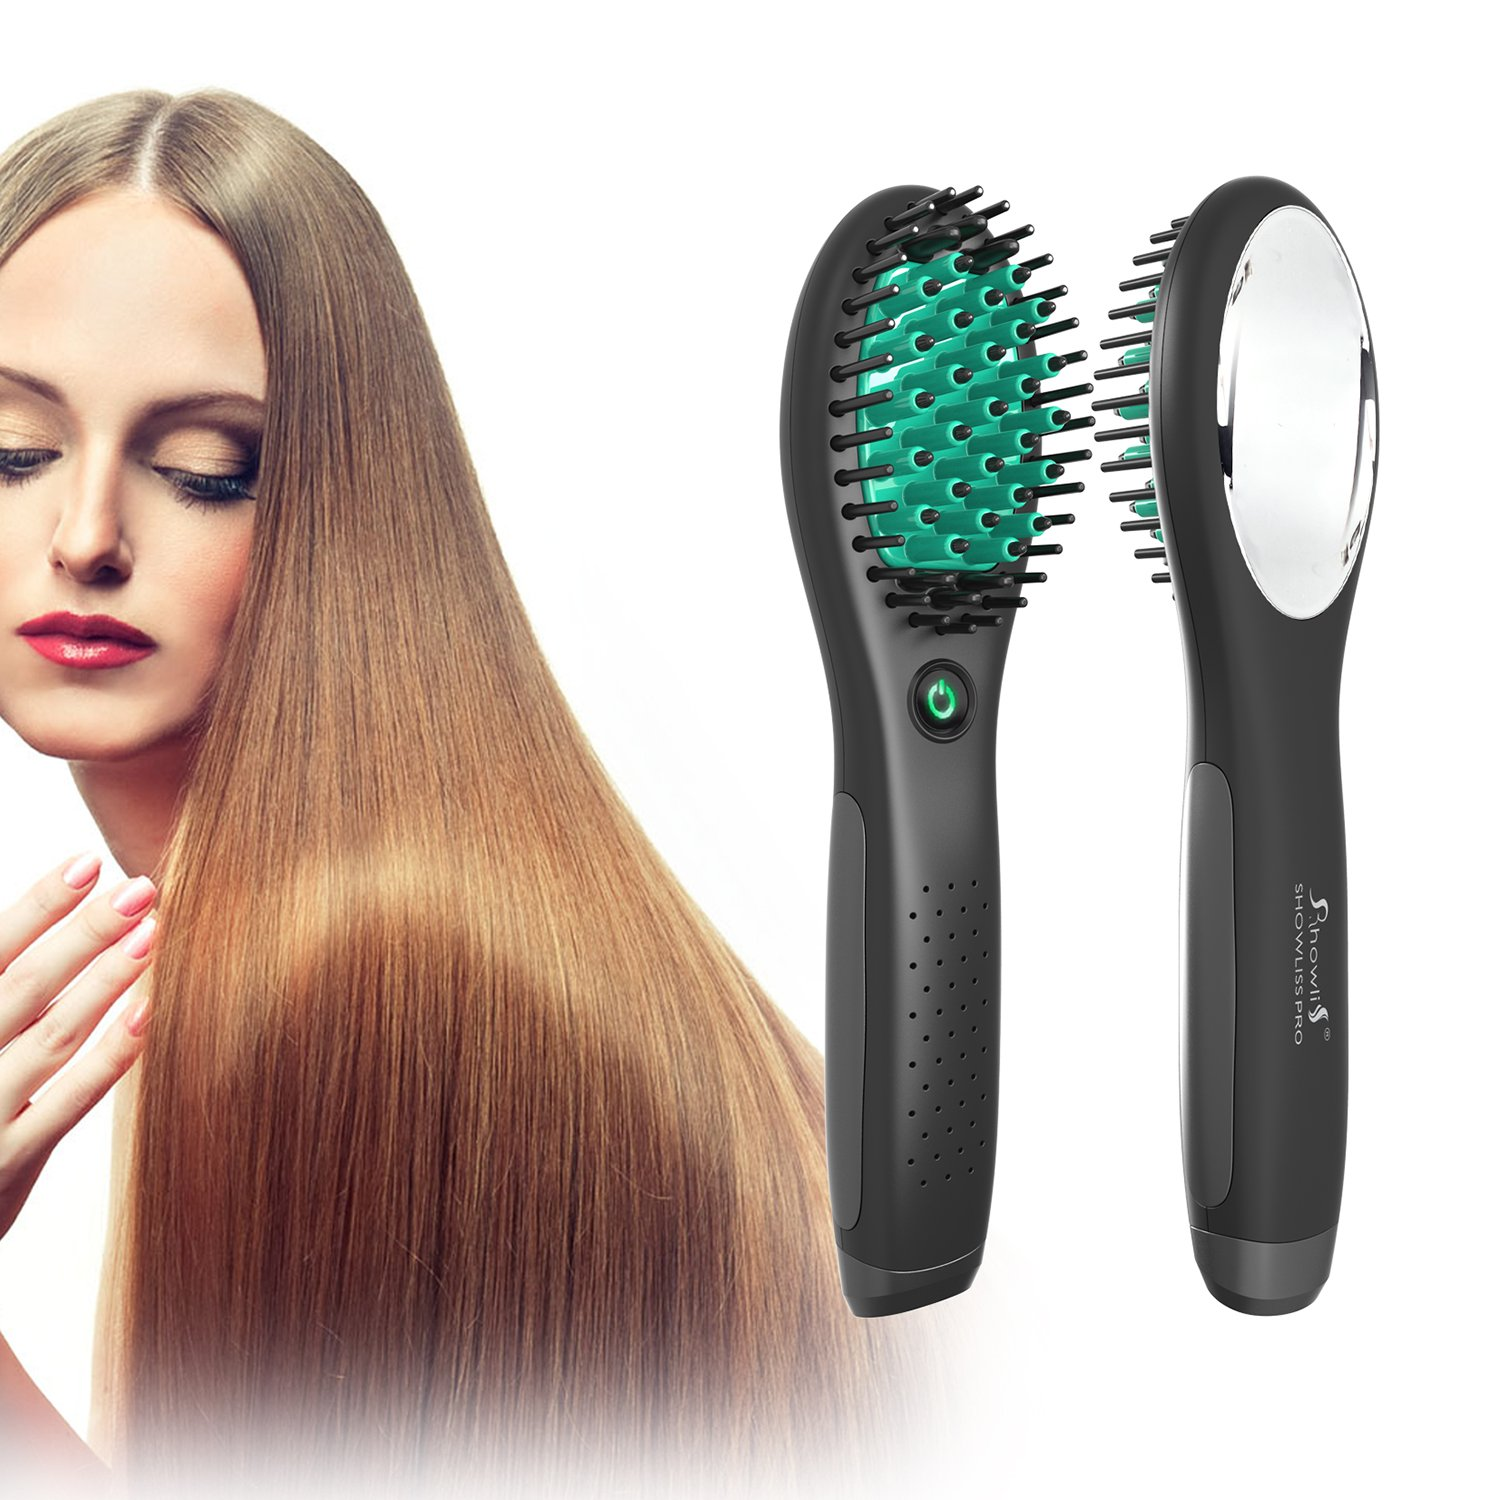 Travel Straightening Brush, Rechargeable Hair Straightening Brush (Black) by Showliss (Image #3)